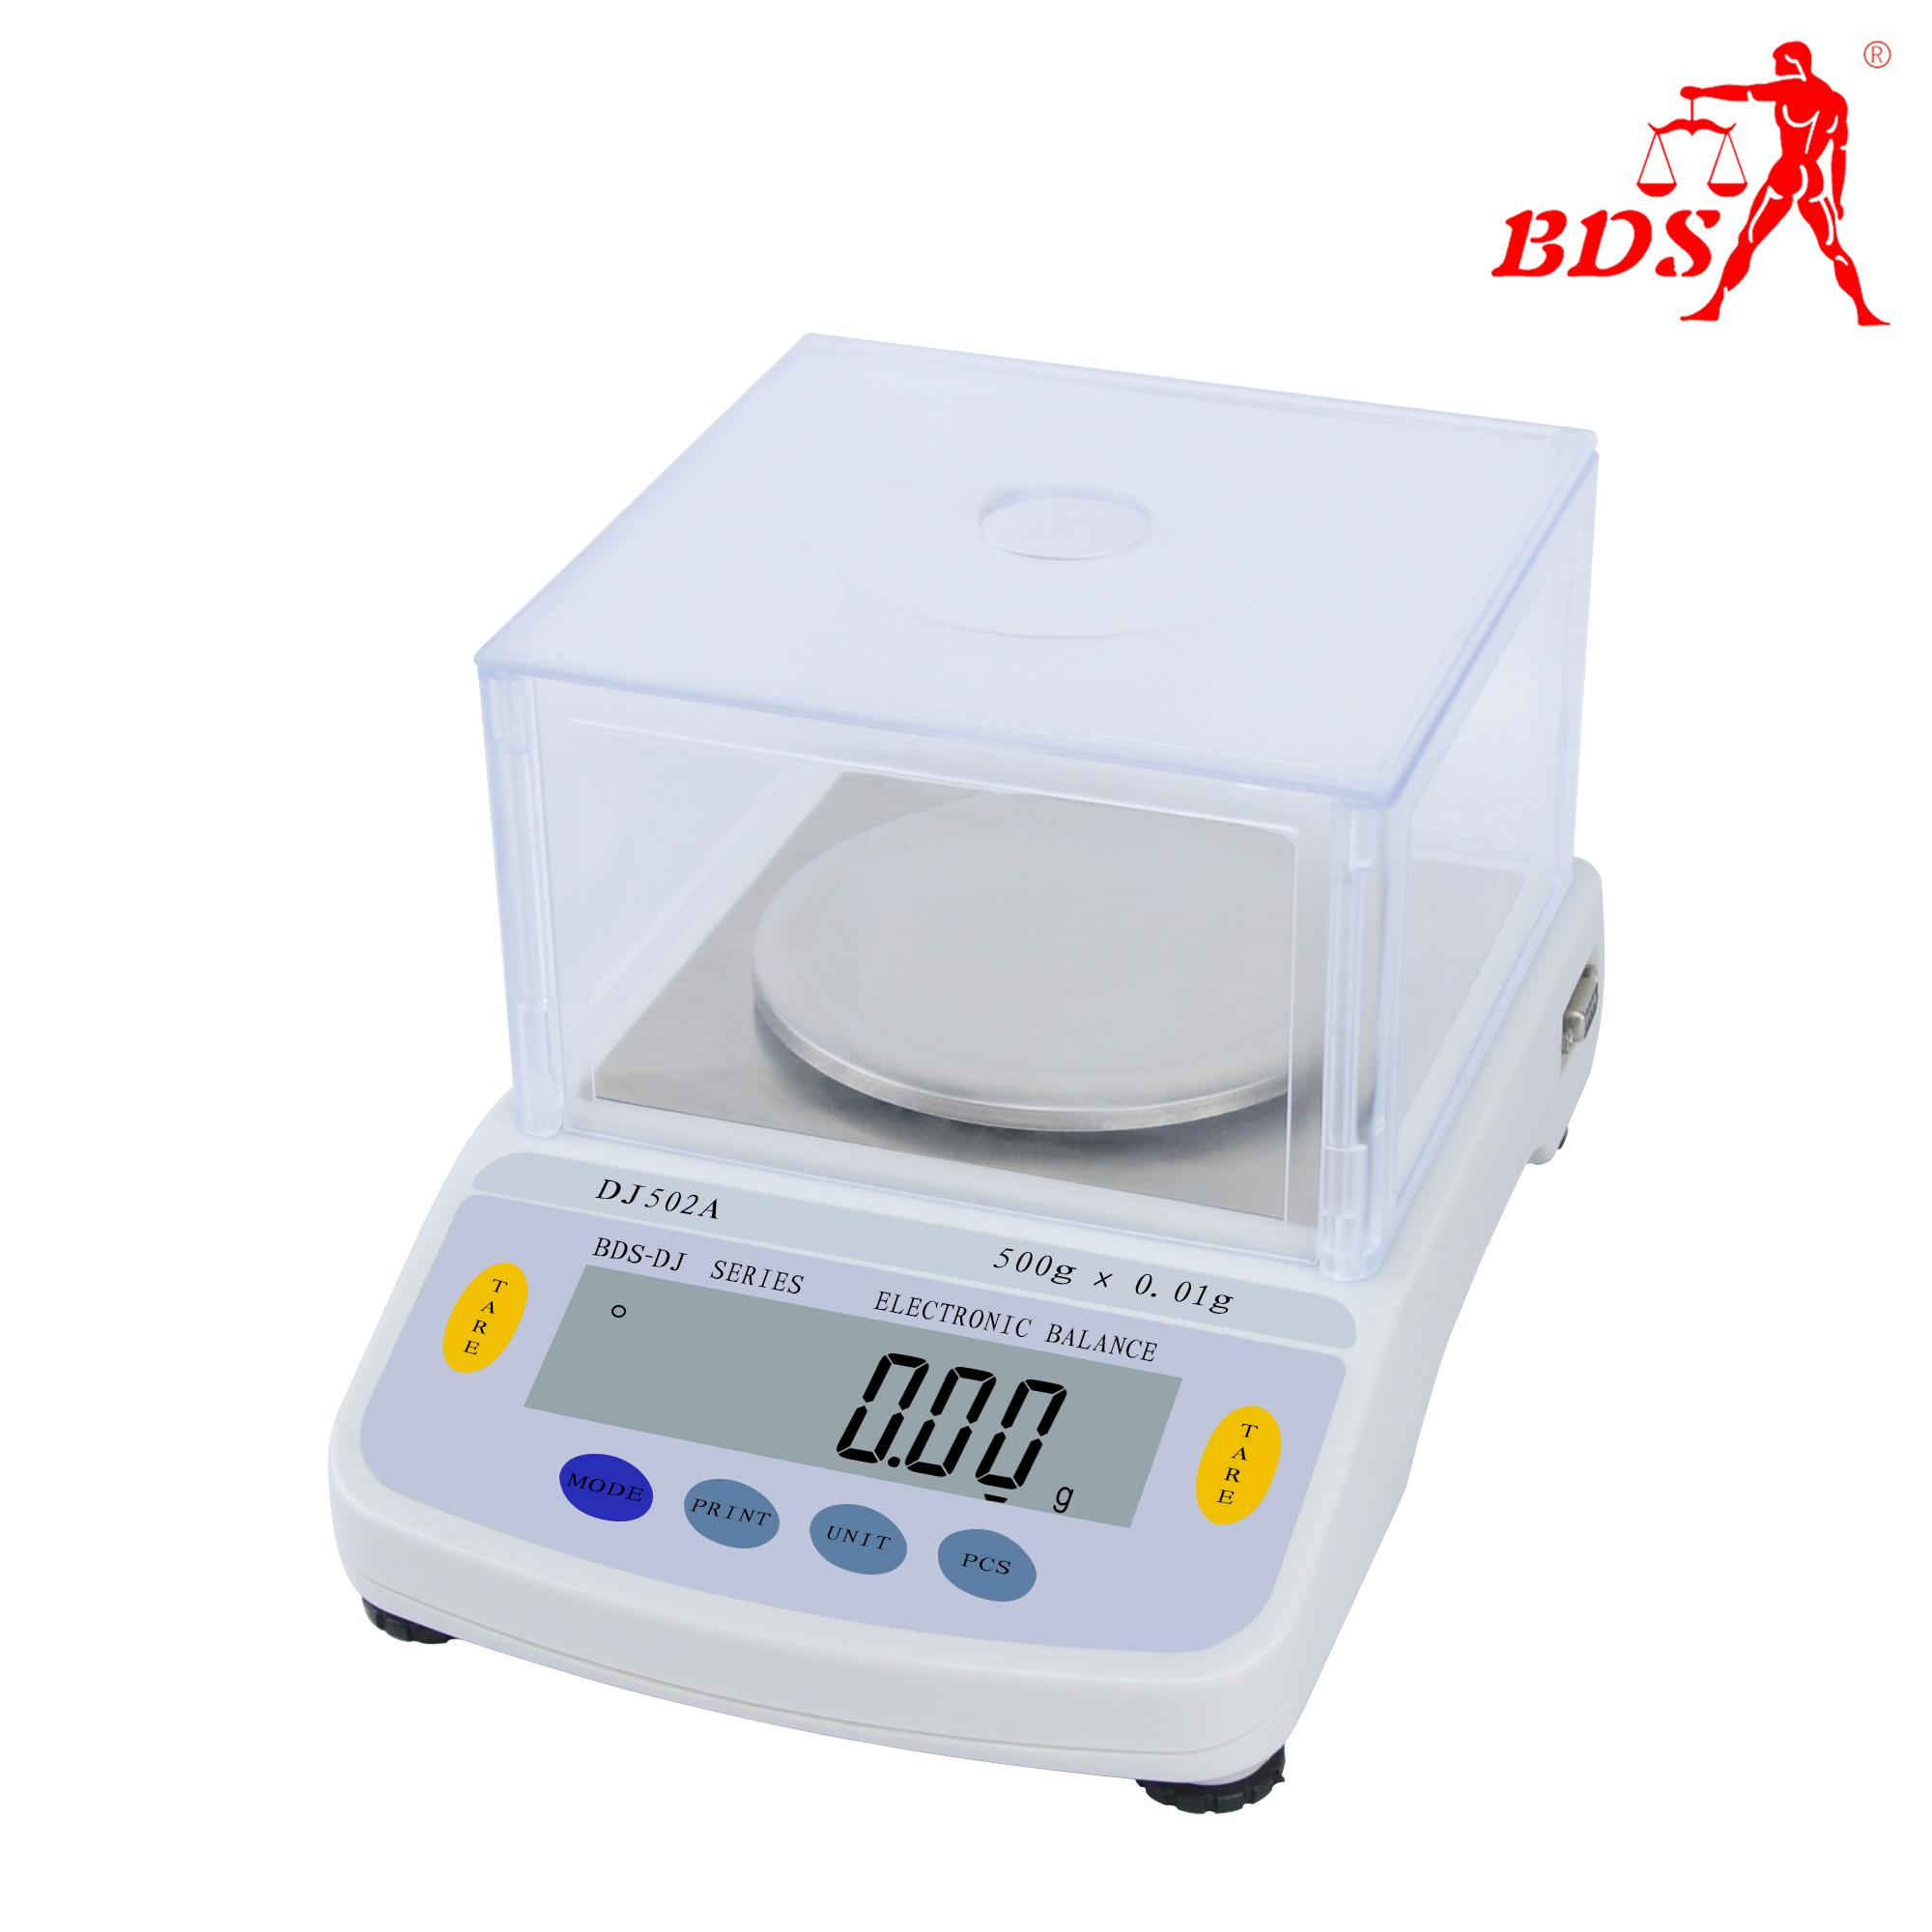 Shenzhen BDS DJ precision balance with super anti-overload function 4